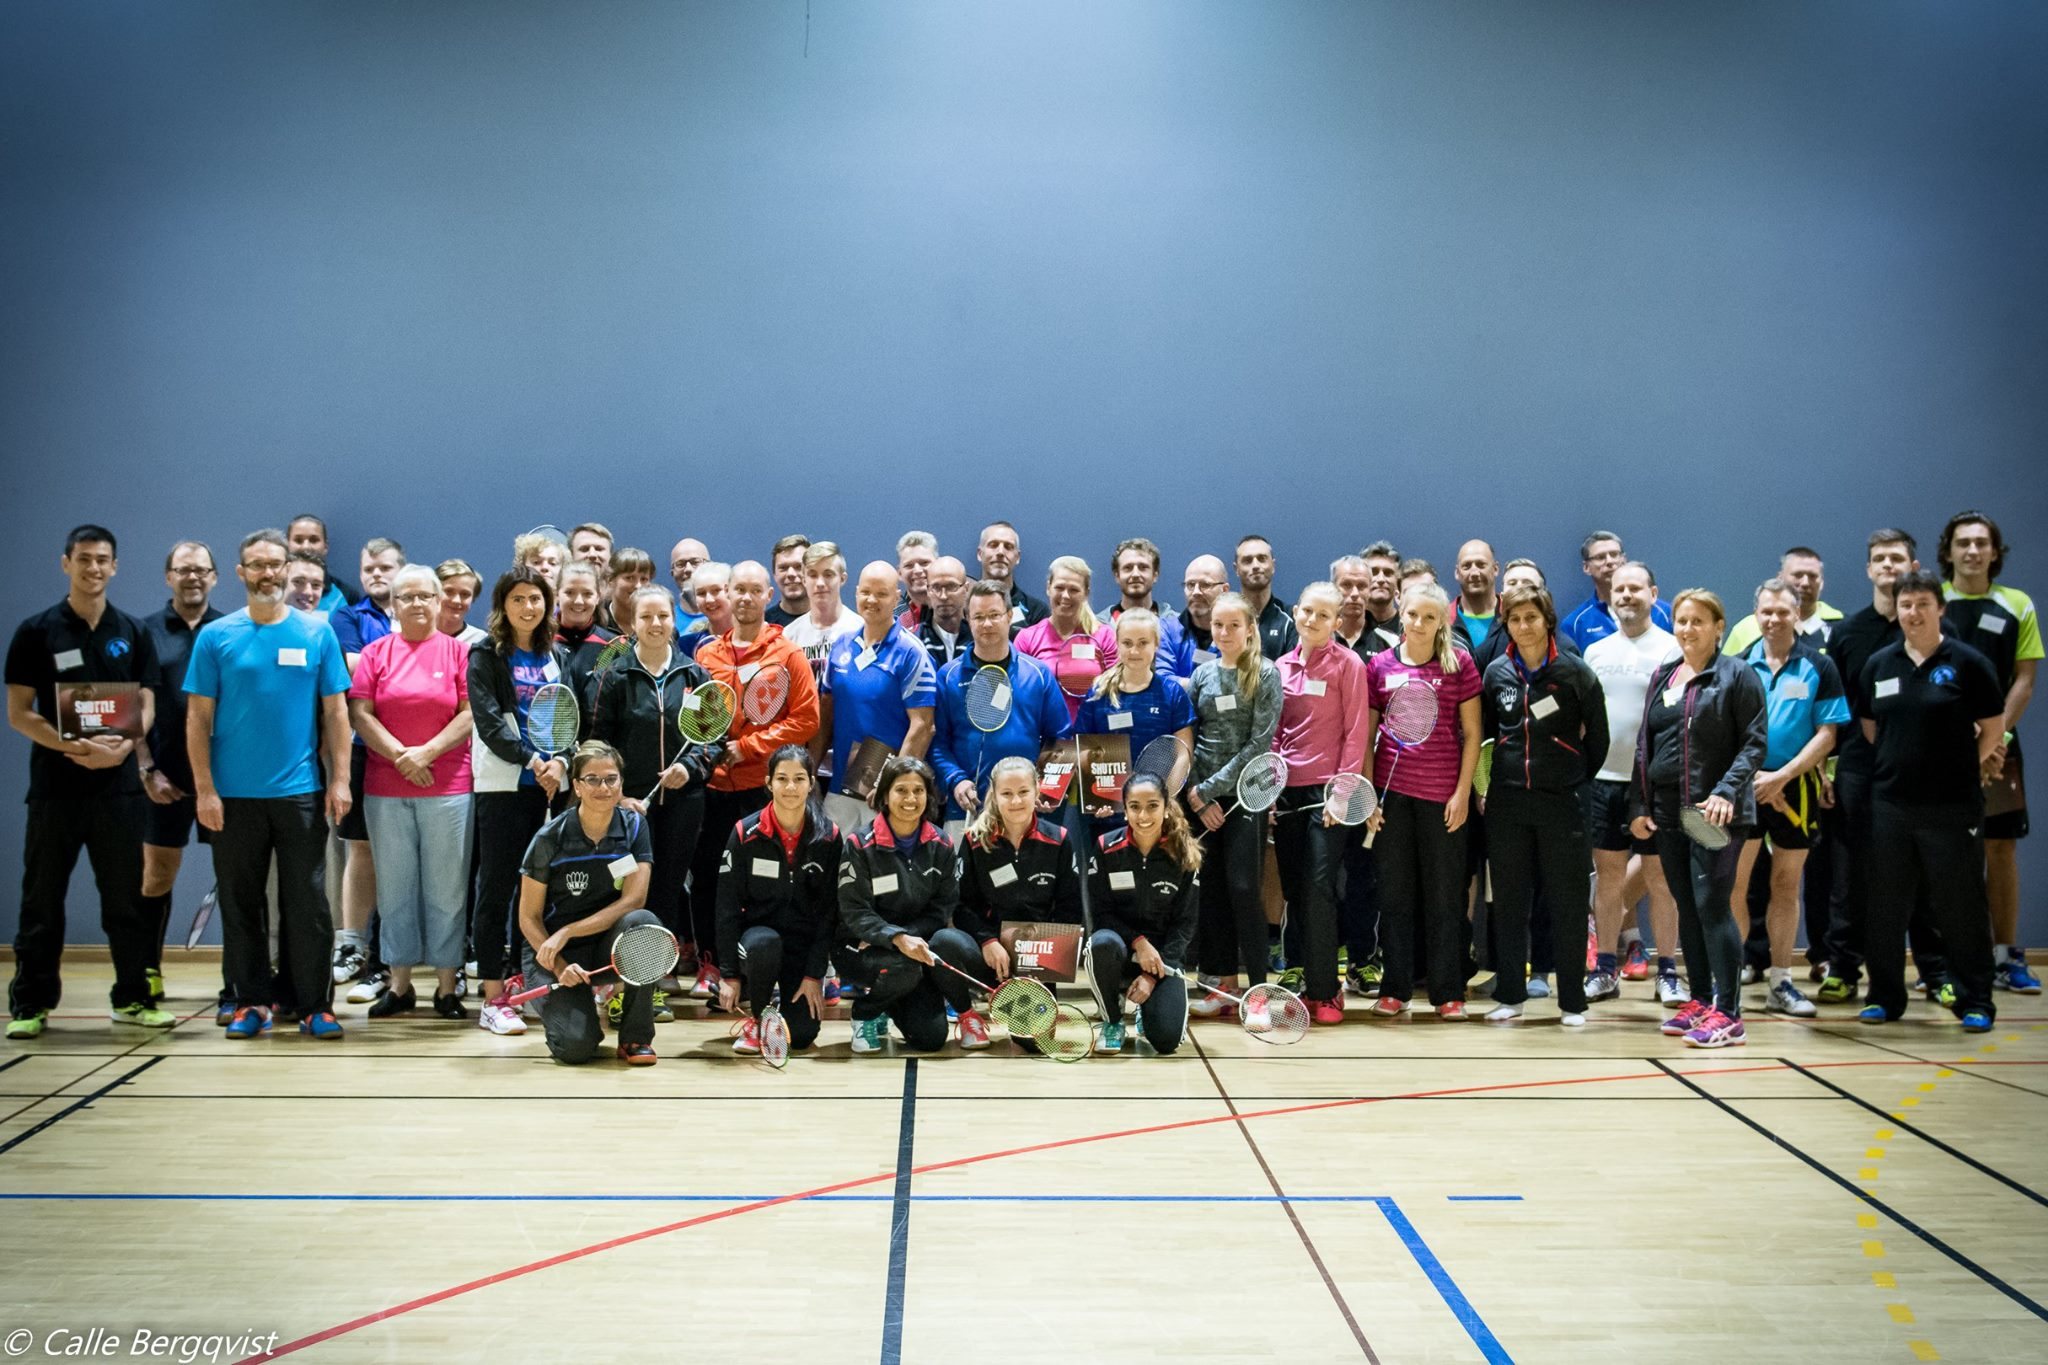 group-picture-shuttle-time-in-stockholm-september-3rd-2016